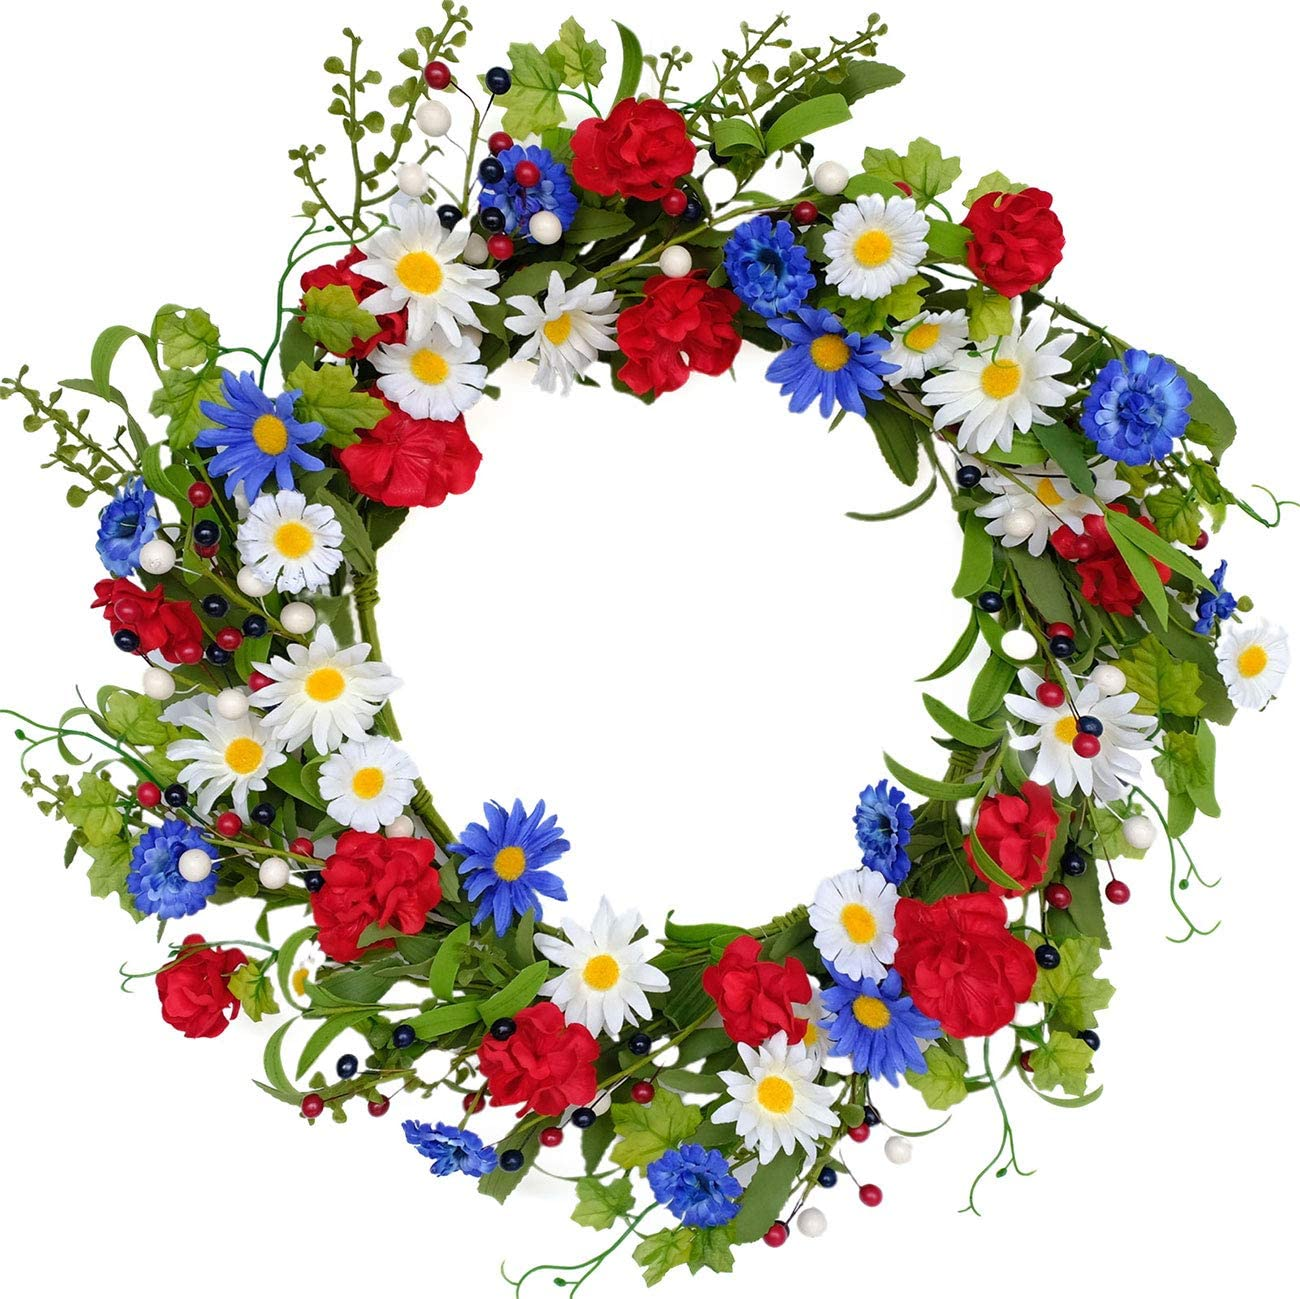 Bibelot 20 inches Red White Blue Artificial Floral Twig Wreath American Flag Floral Wreath Patriotic Decorations Wreath 4th of July Independence Day Memorial Day Flag Day Hanging Decoration